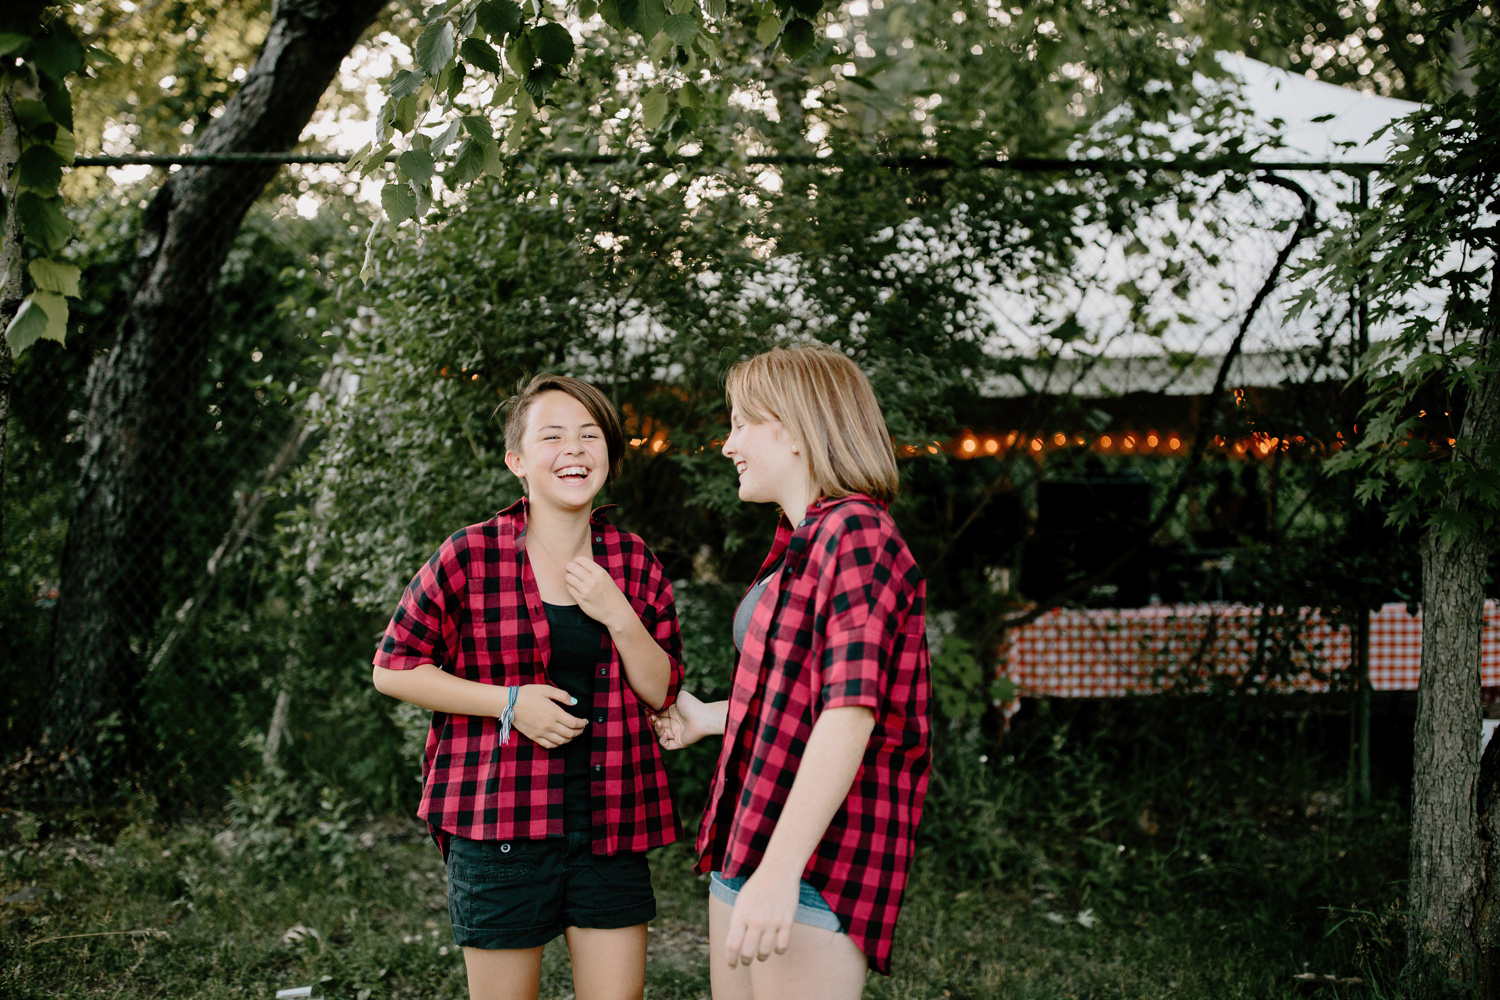 girls laughing in matching plaid shirts